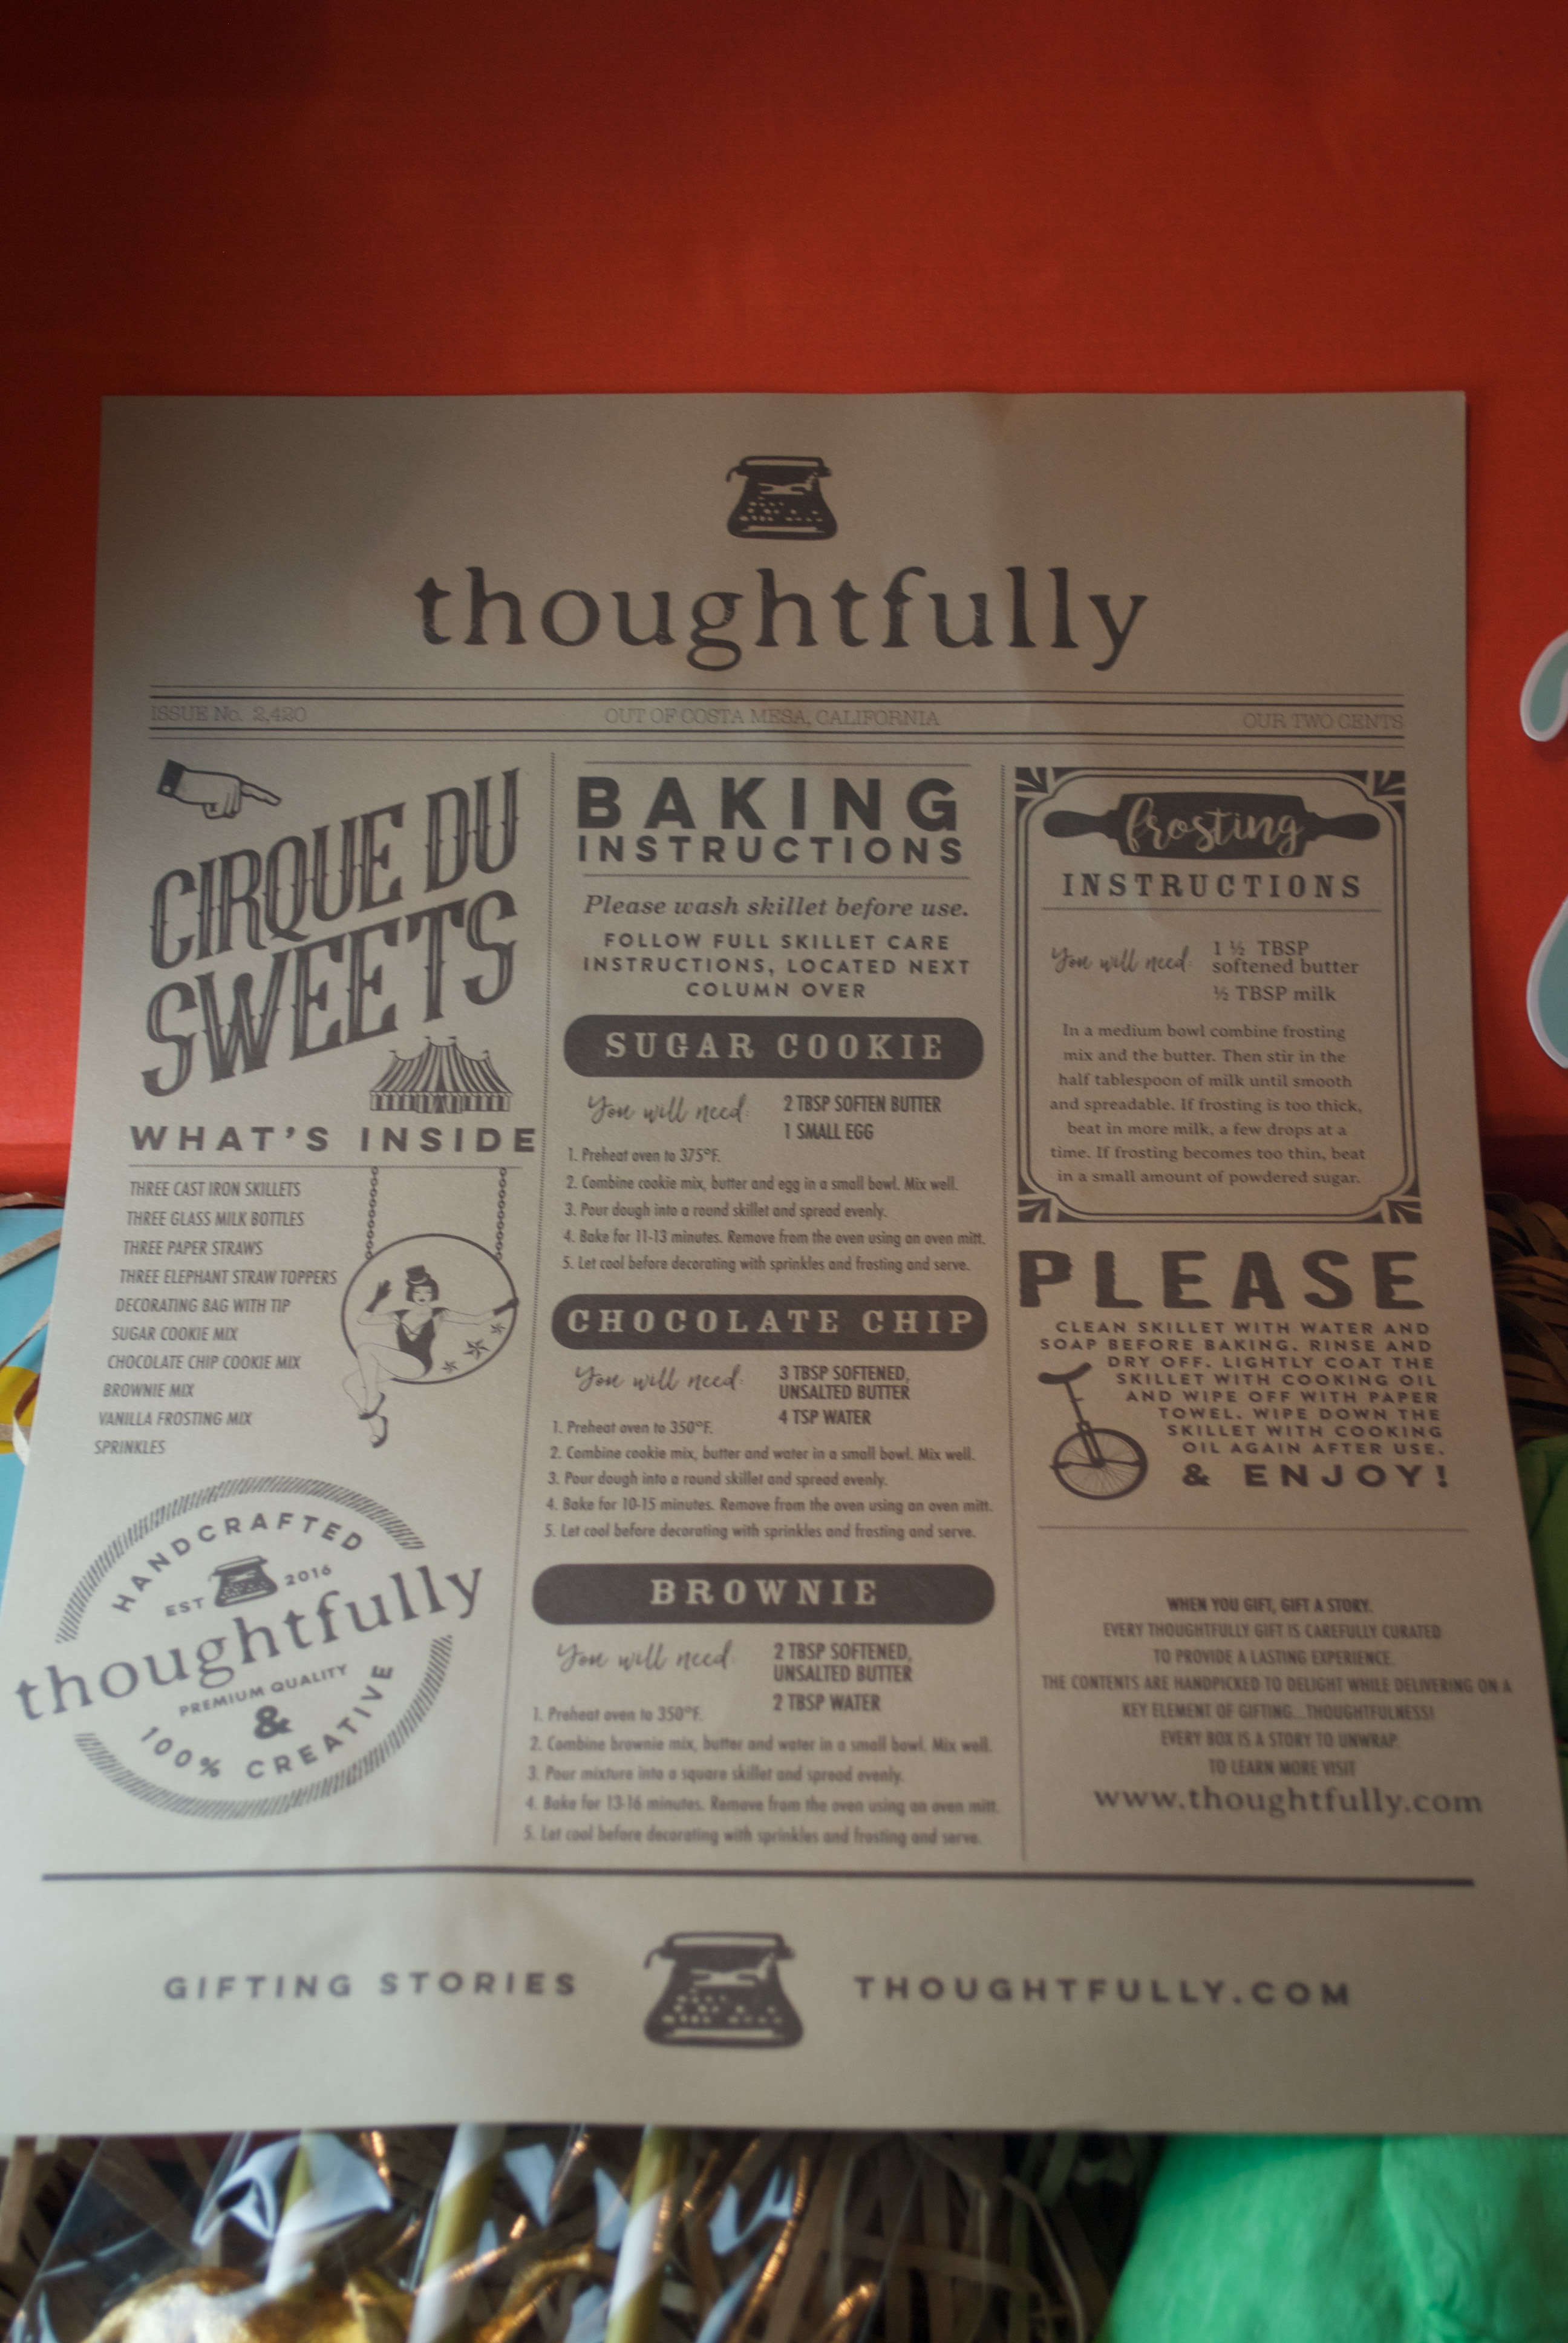 The perfect holiday gift for a family from Thoughtfully.com